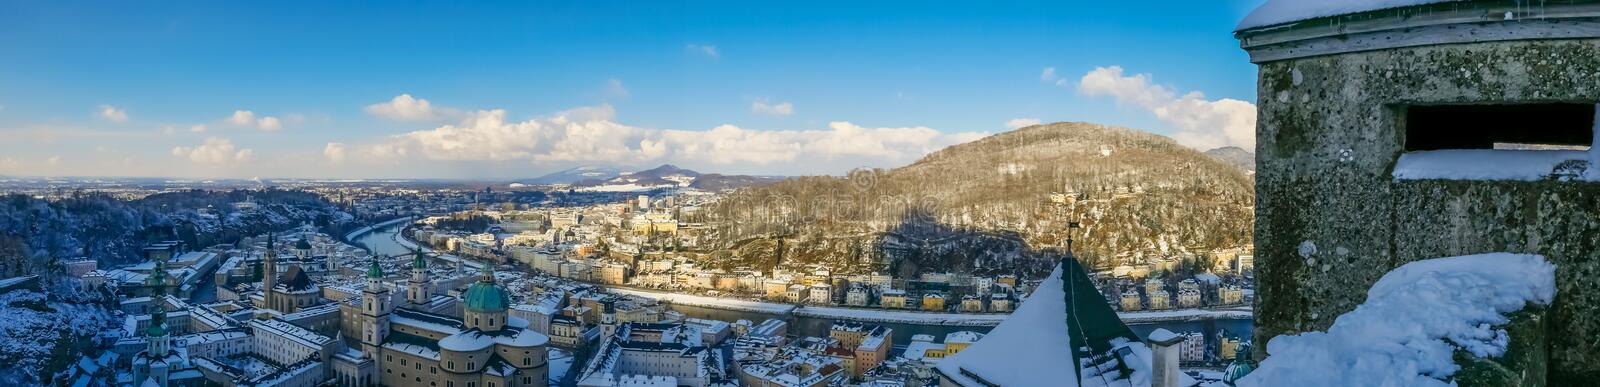 Panorama landscape view salzburg austria moutain blue sky city royalty free stock images